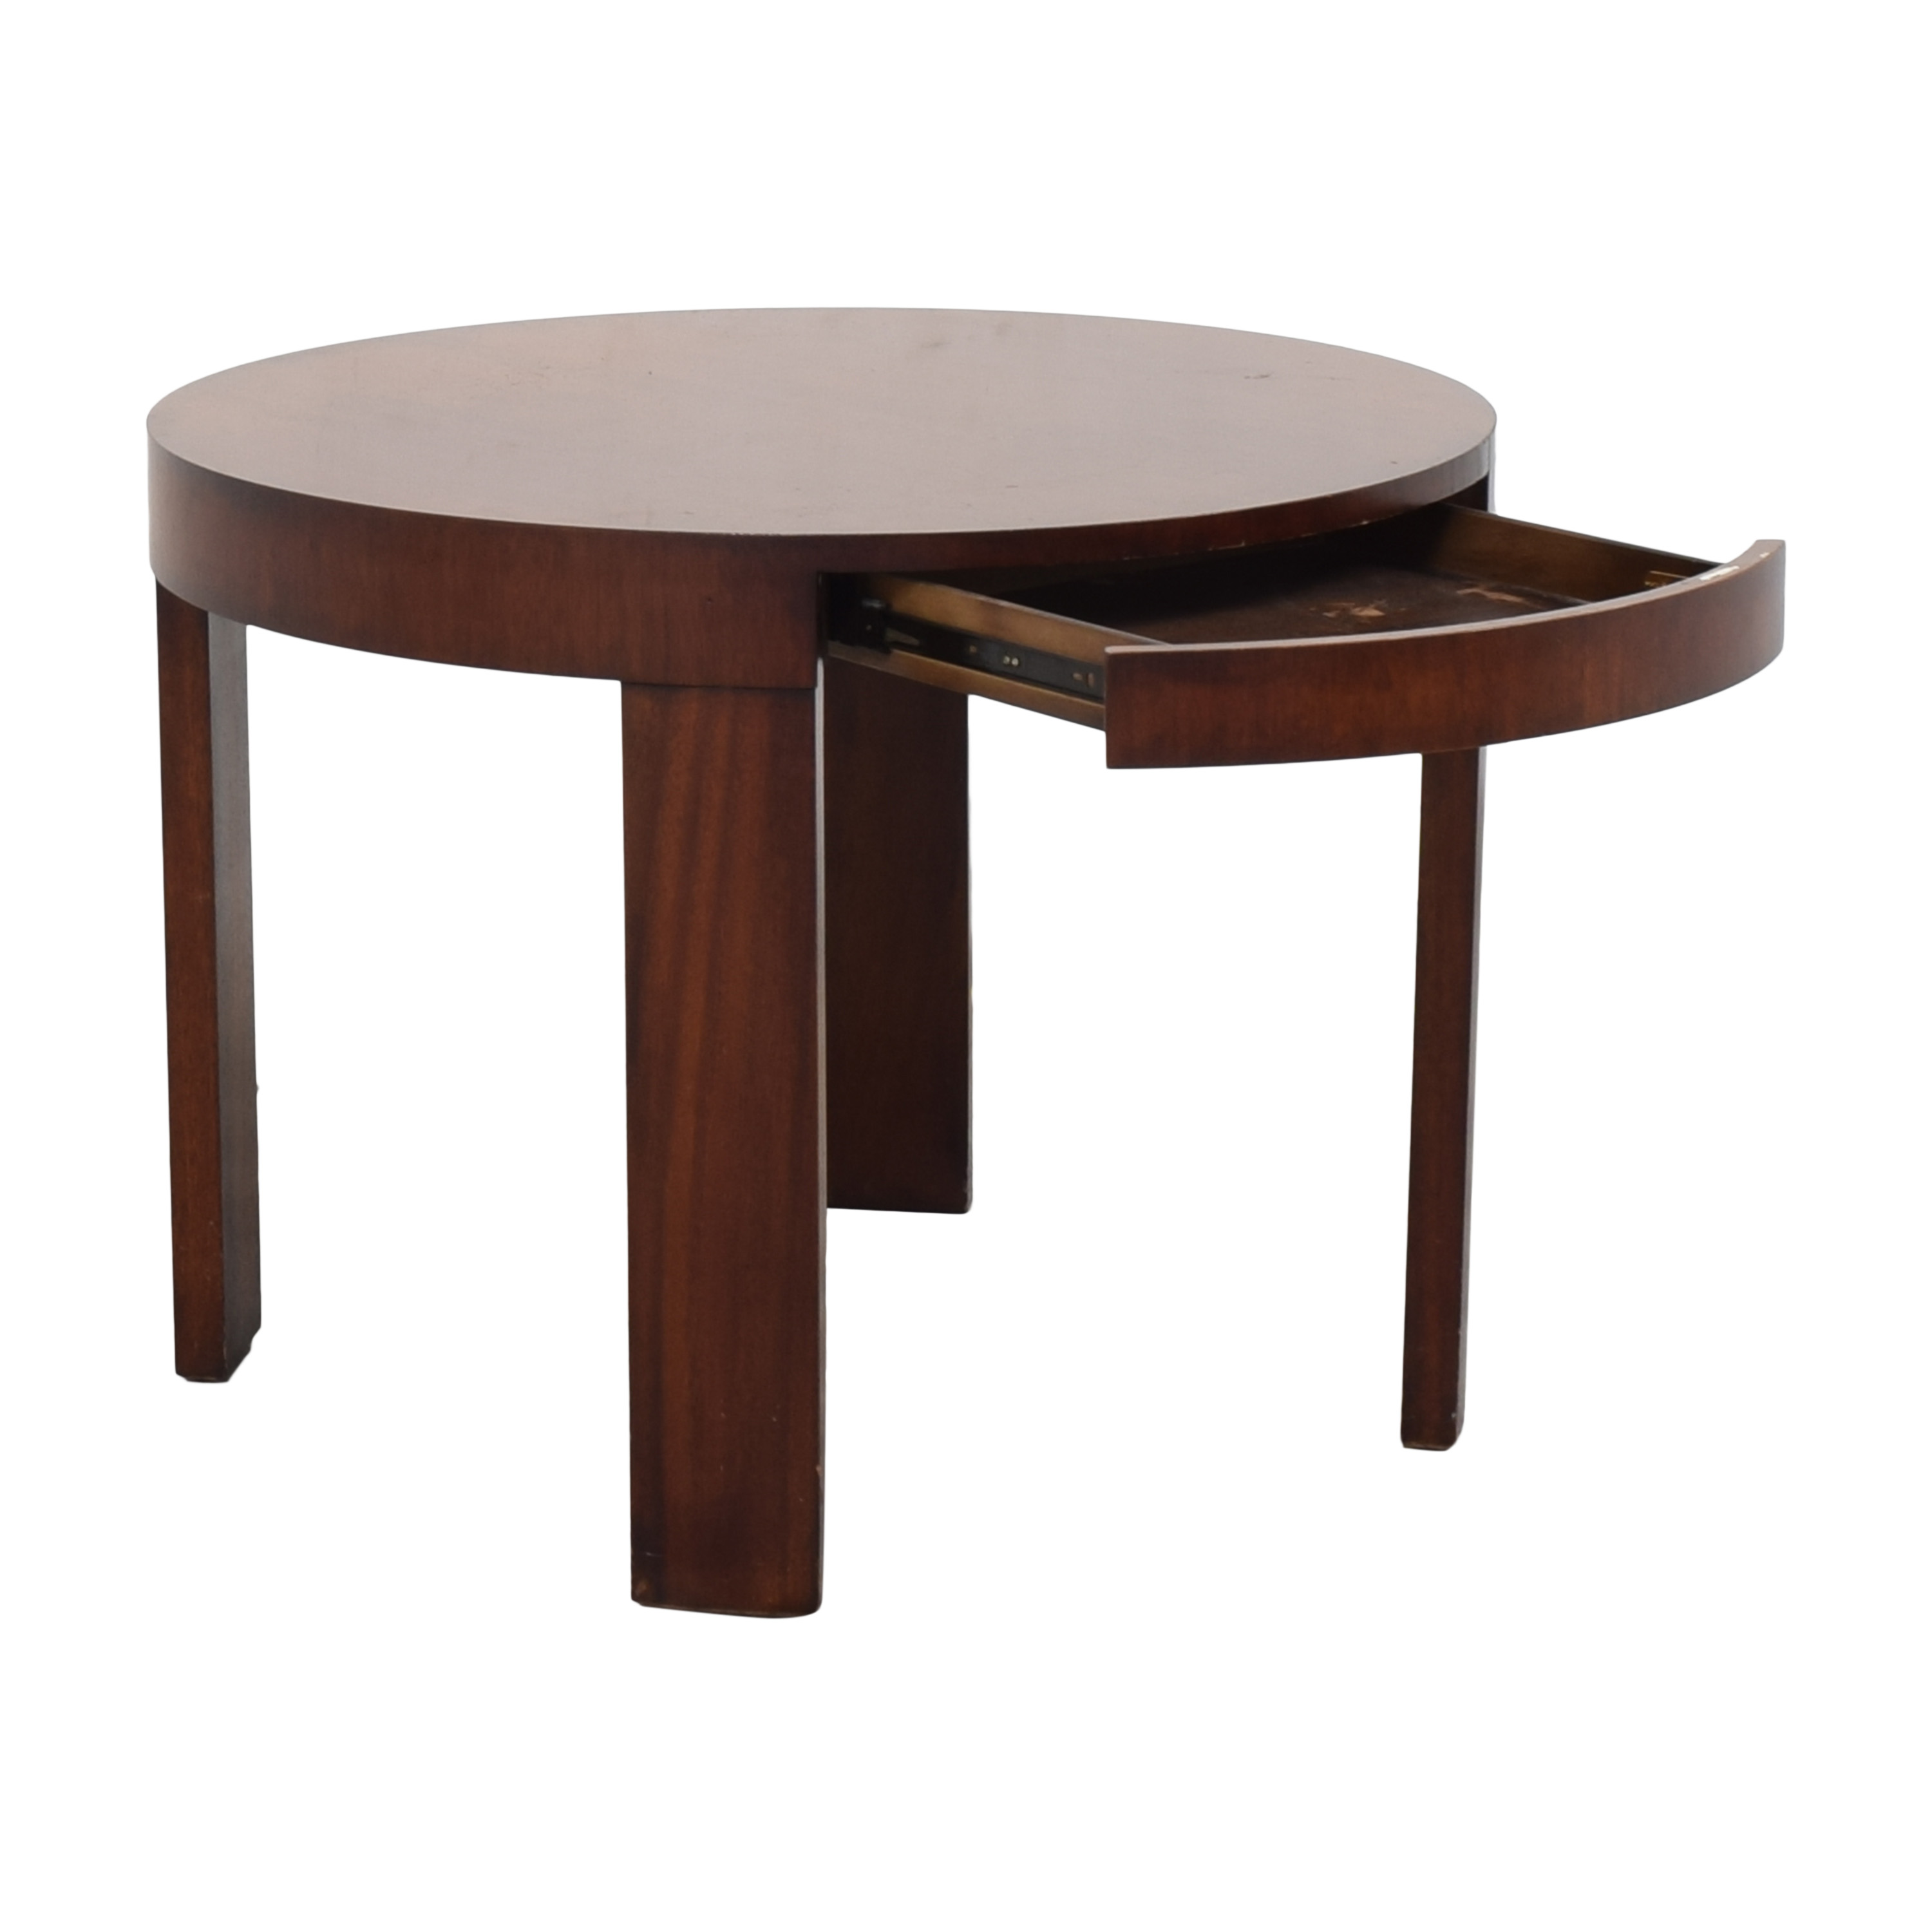 Ralph Lauren Home Ralph Lauren Home Round Single Drawer End Table  used